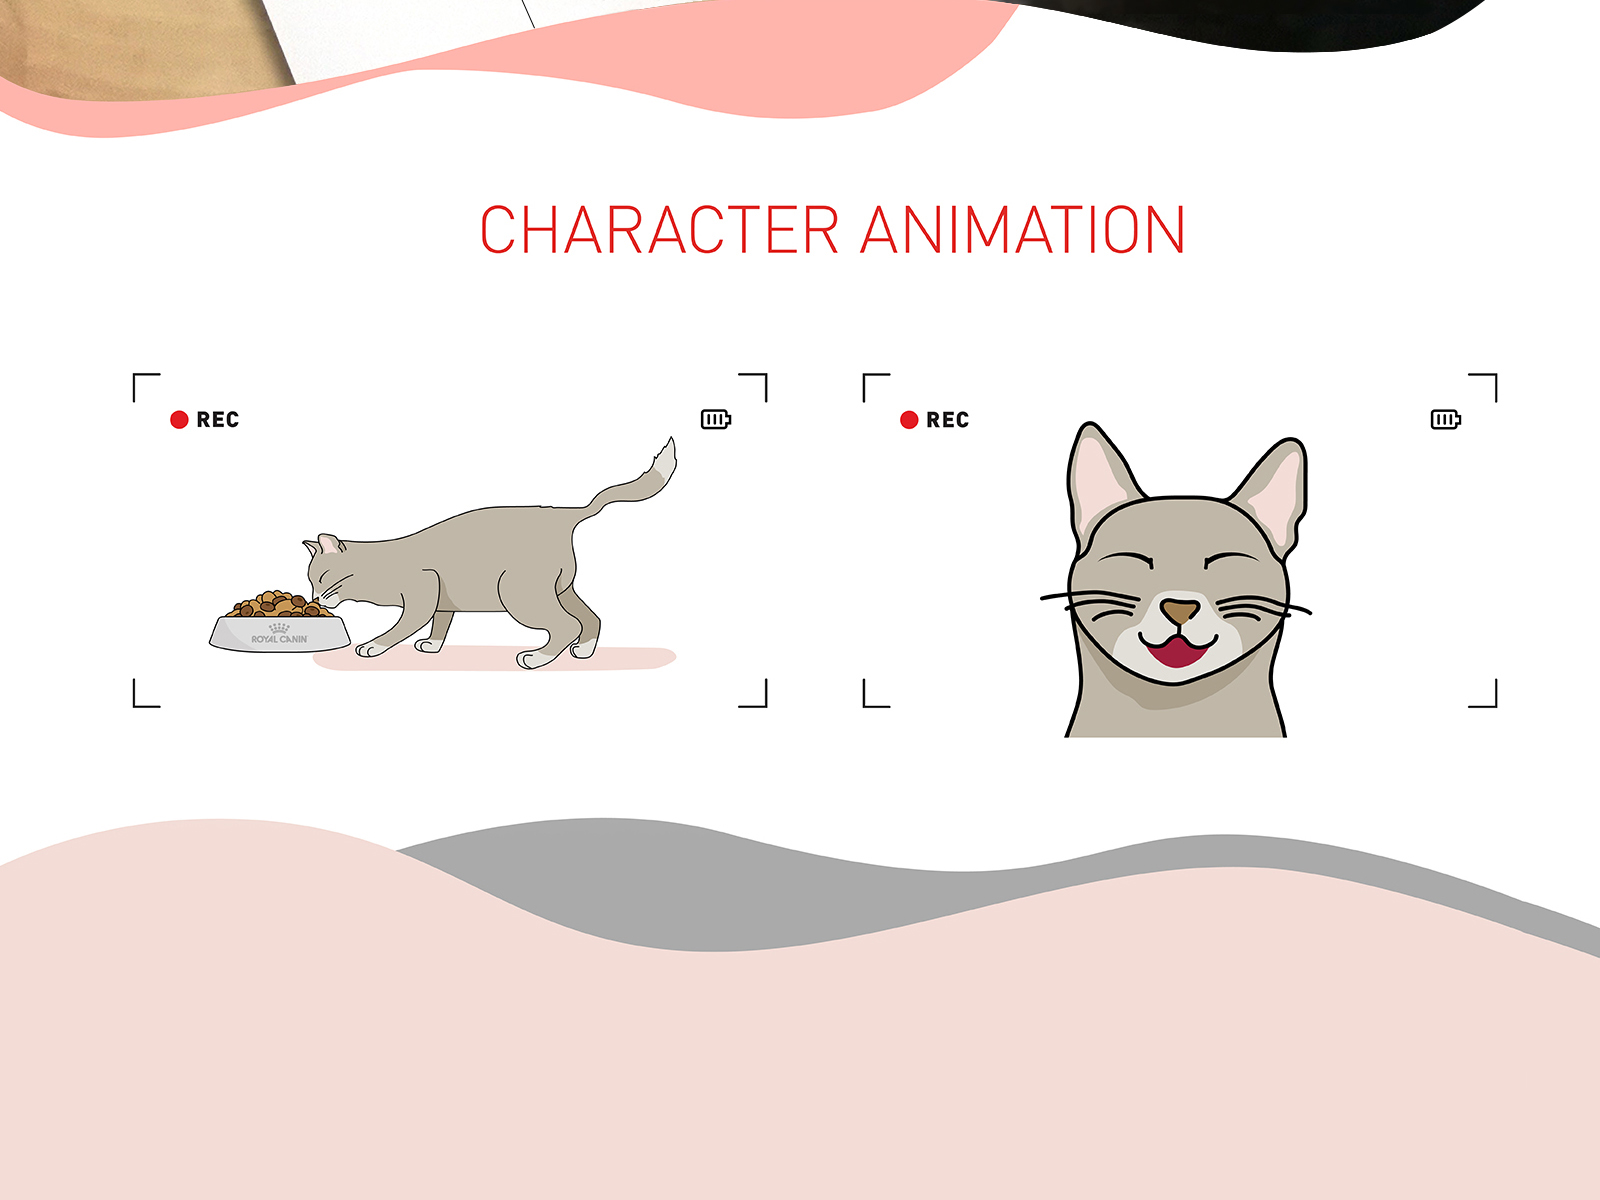 Royal Canin wet food promotional video illustration of cat animation